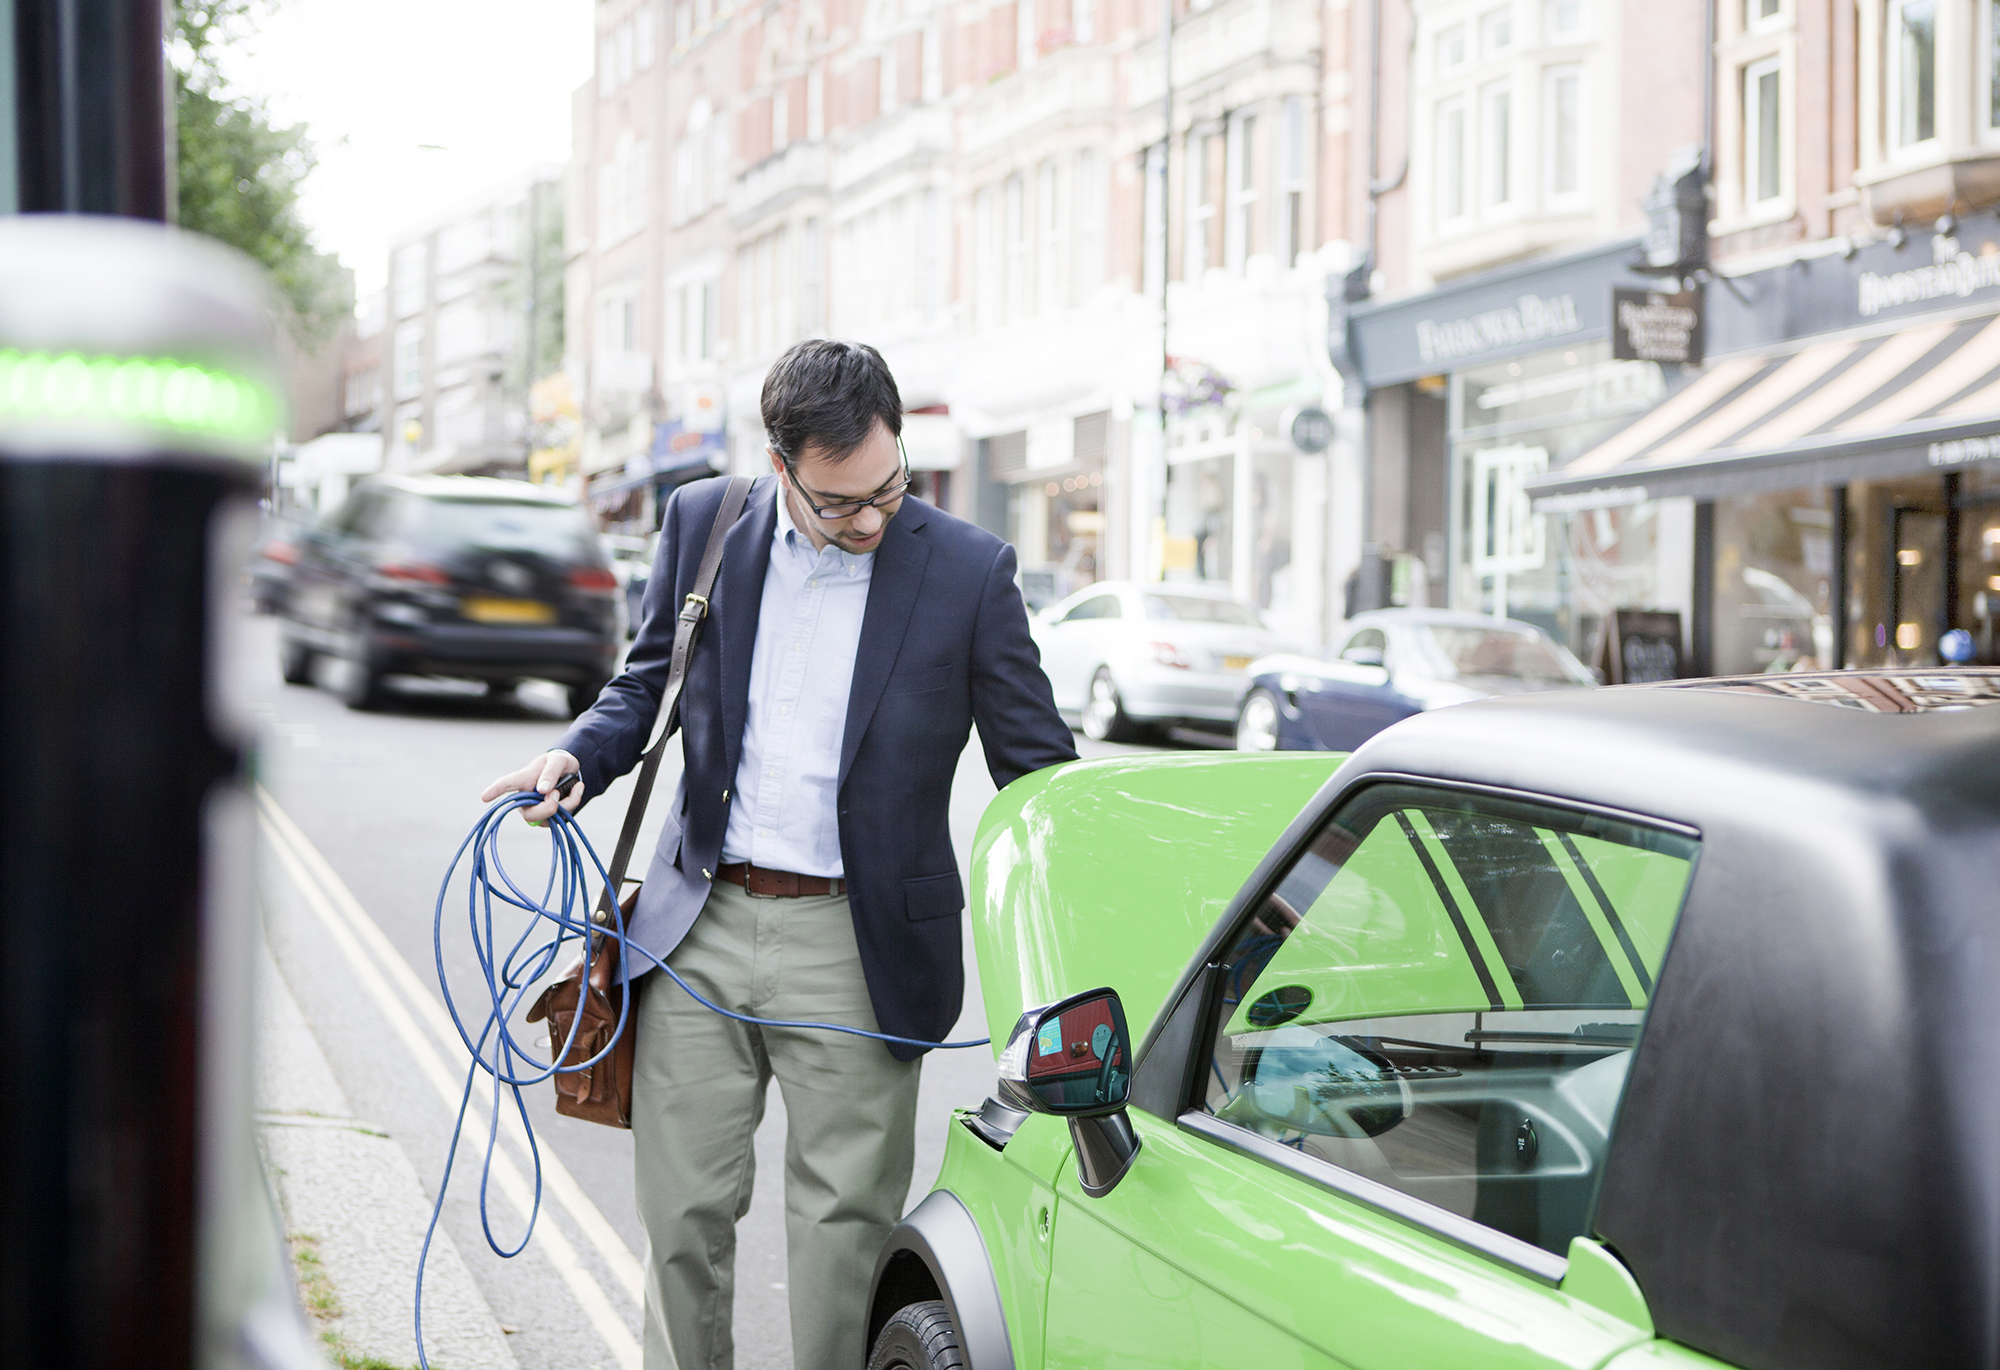 Man charging electric vehicle